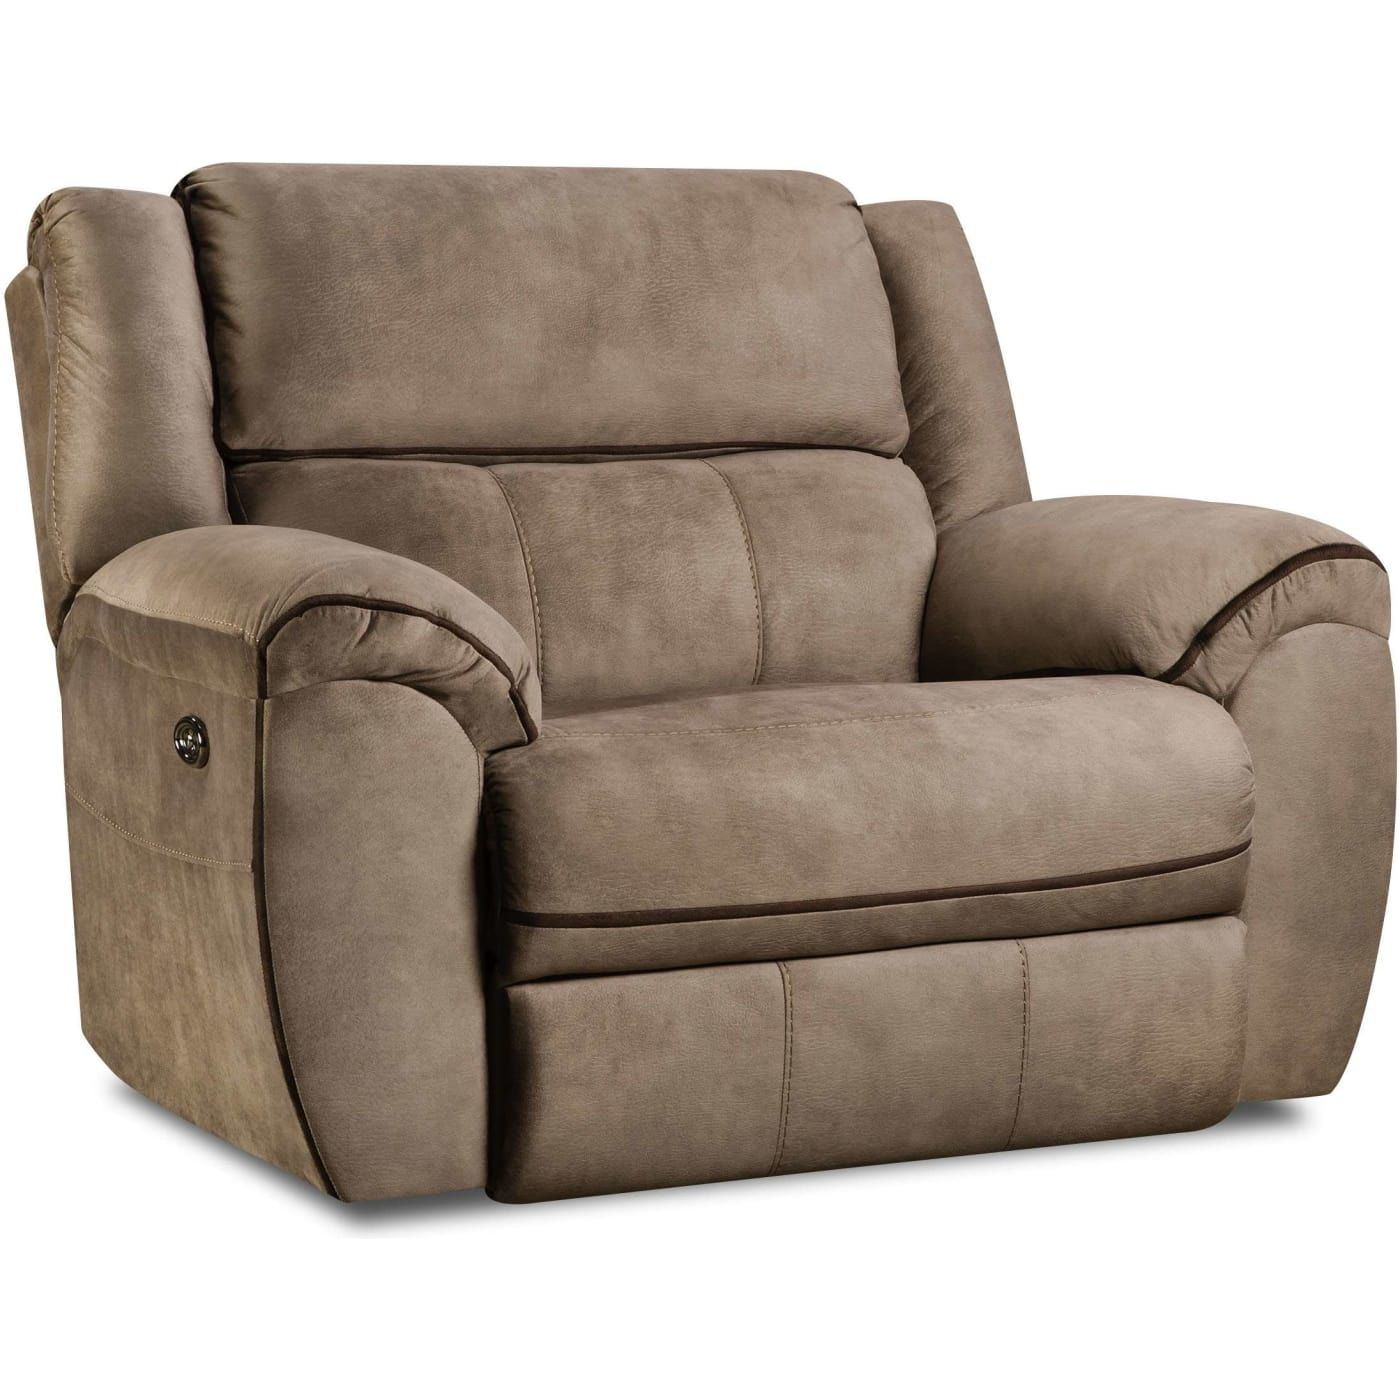 Simmons Upholstery Osborn Tan Power Cuddler Recliner Reviews